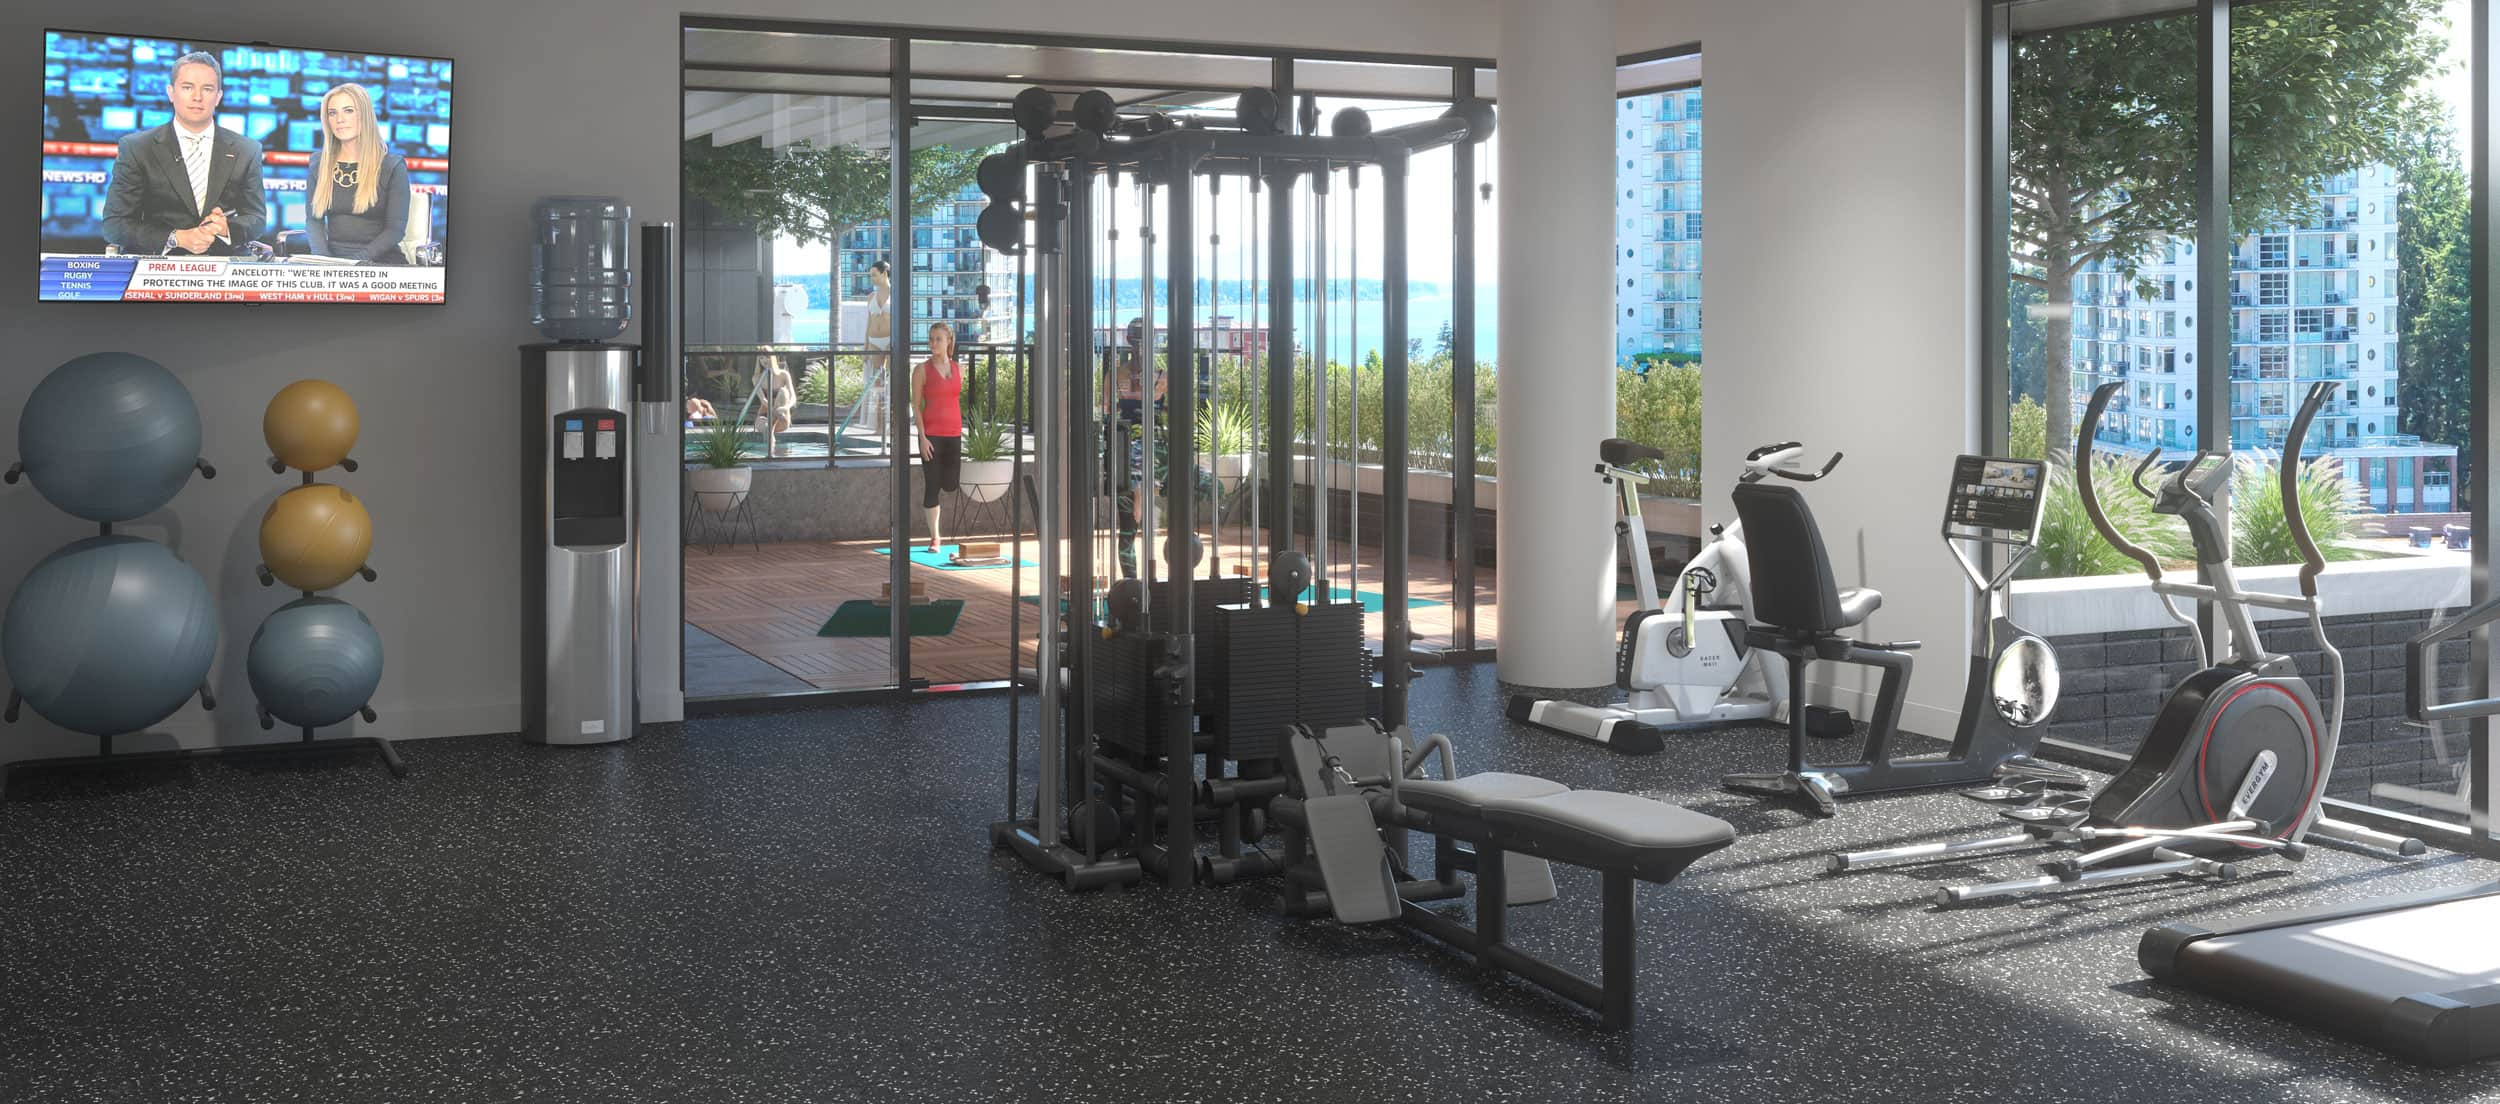 Amenities - Gym